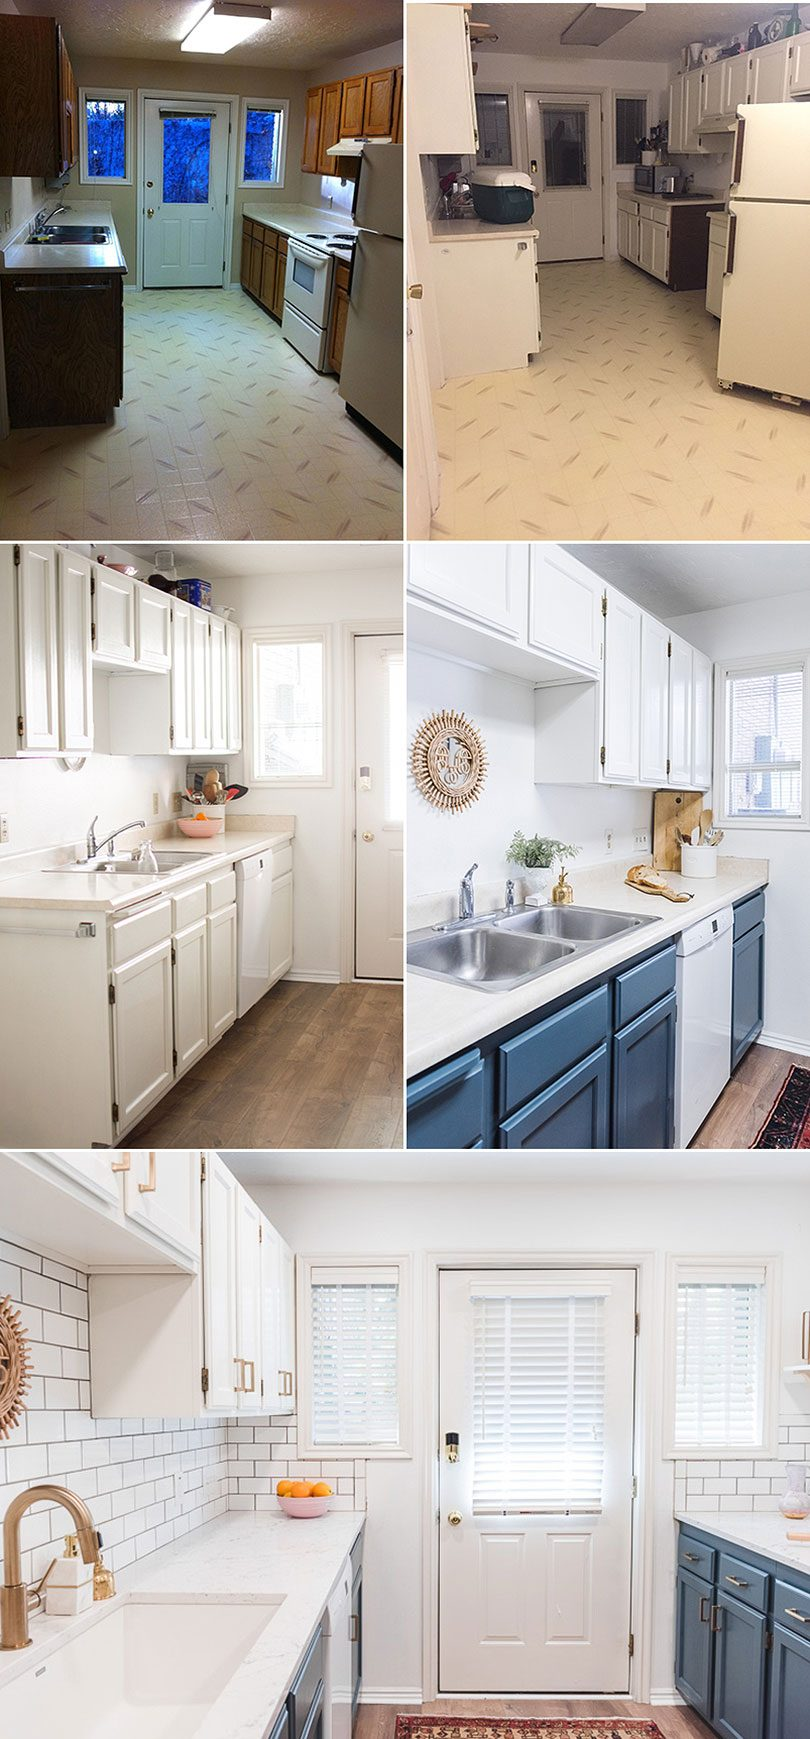 The House That Lars Built: Kitchen Transformation - Before and After